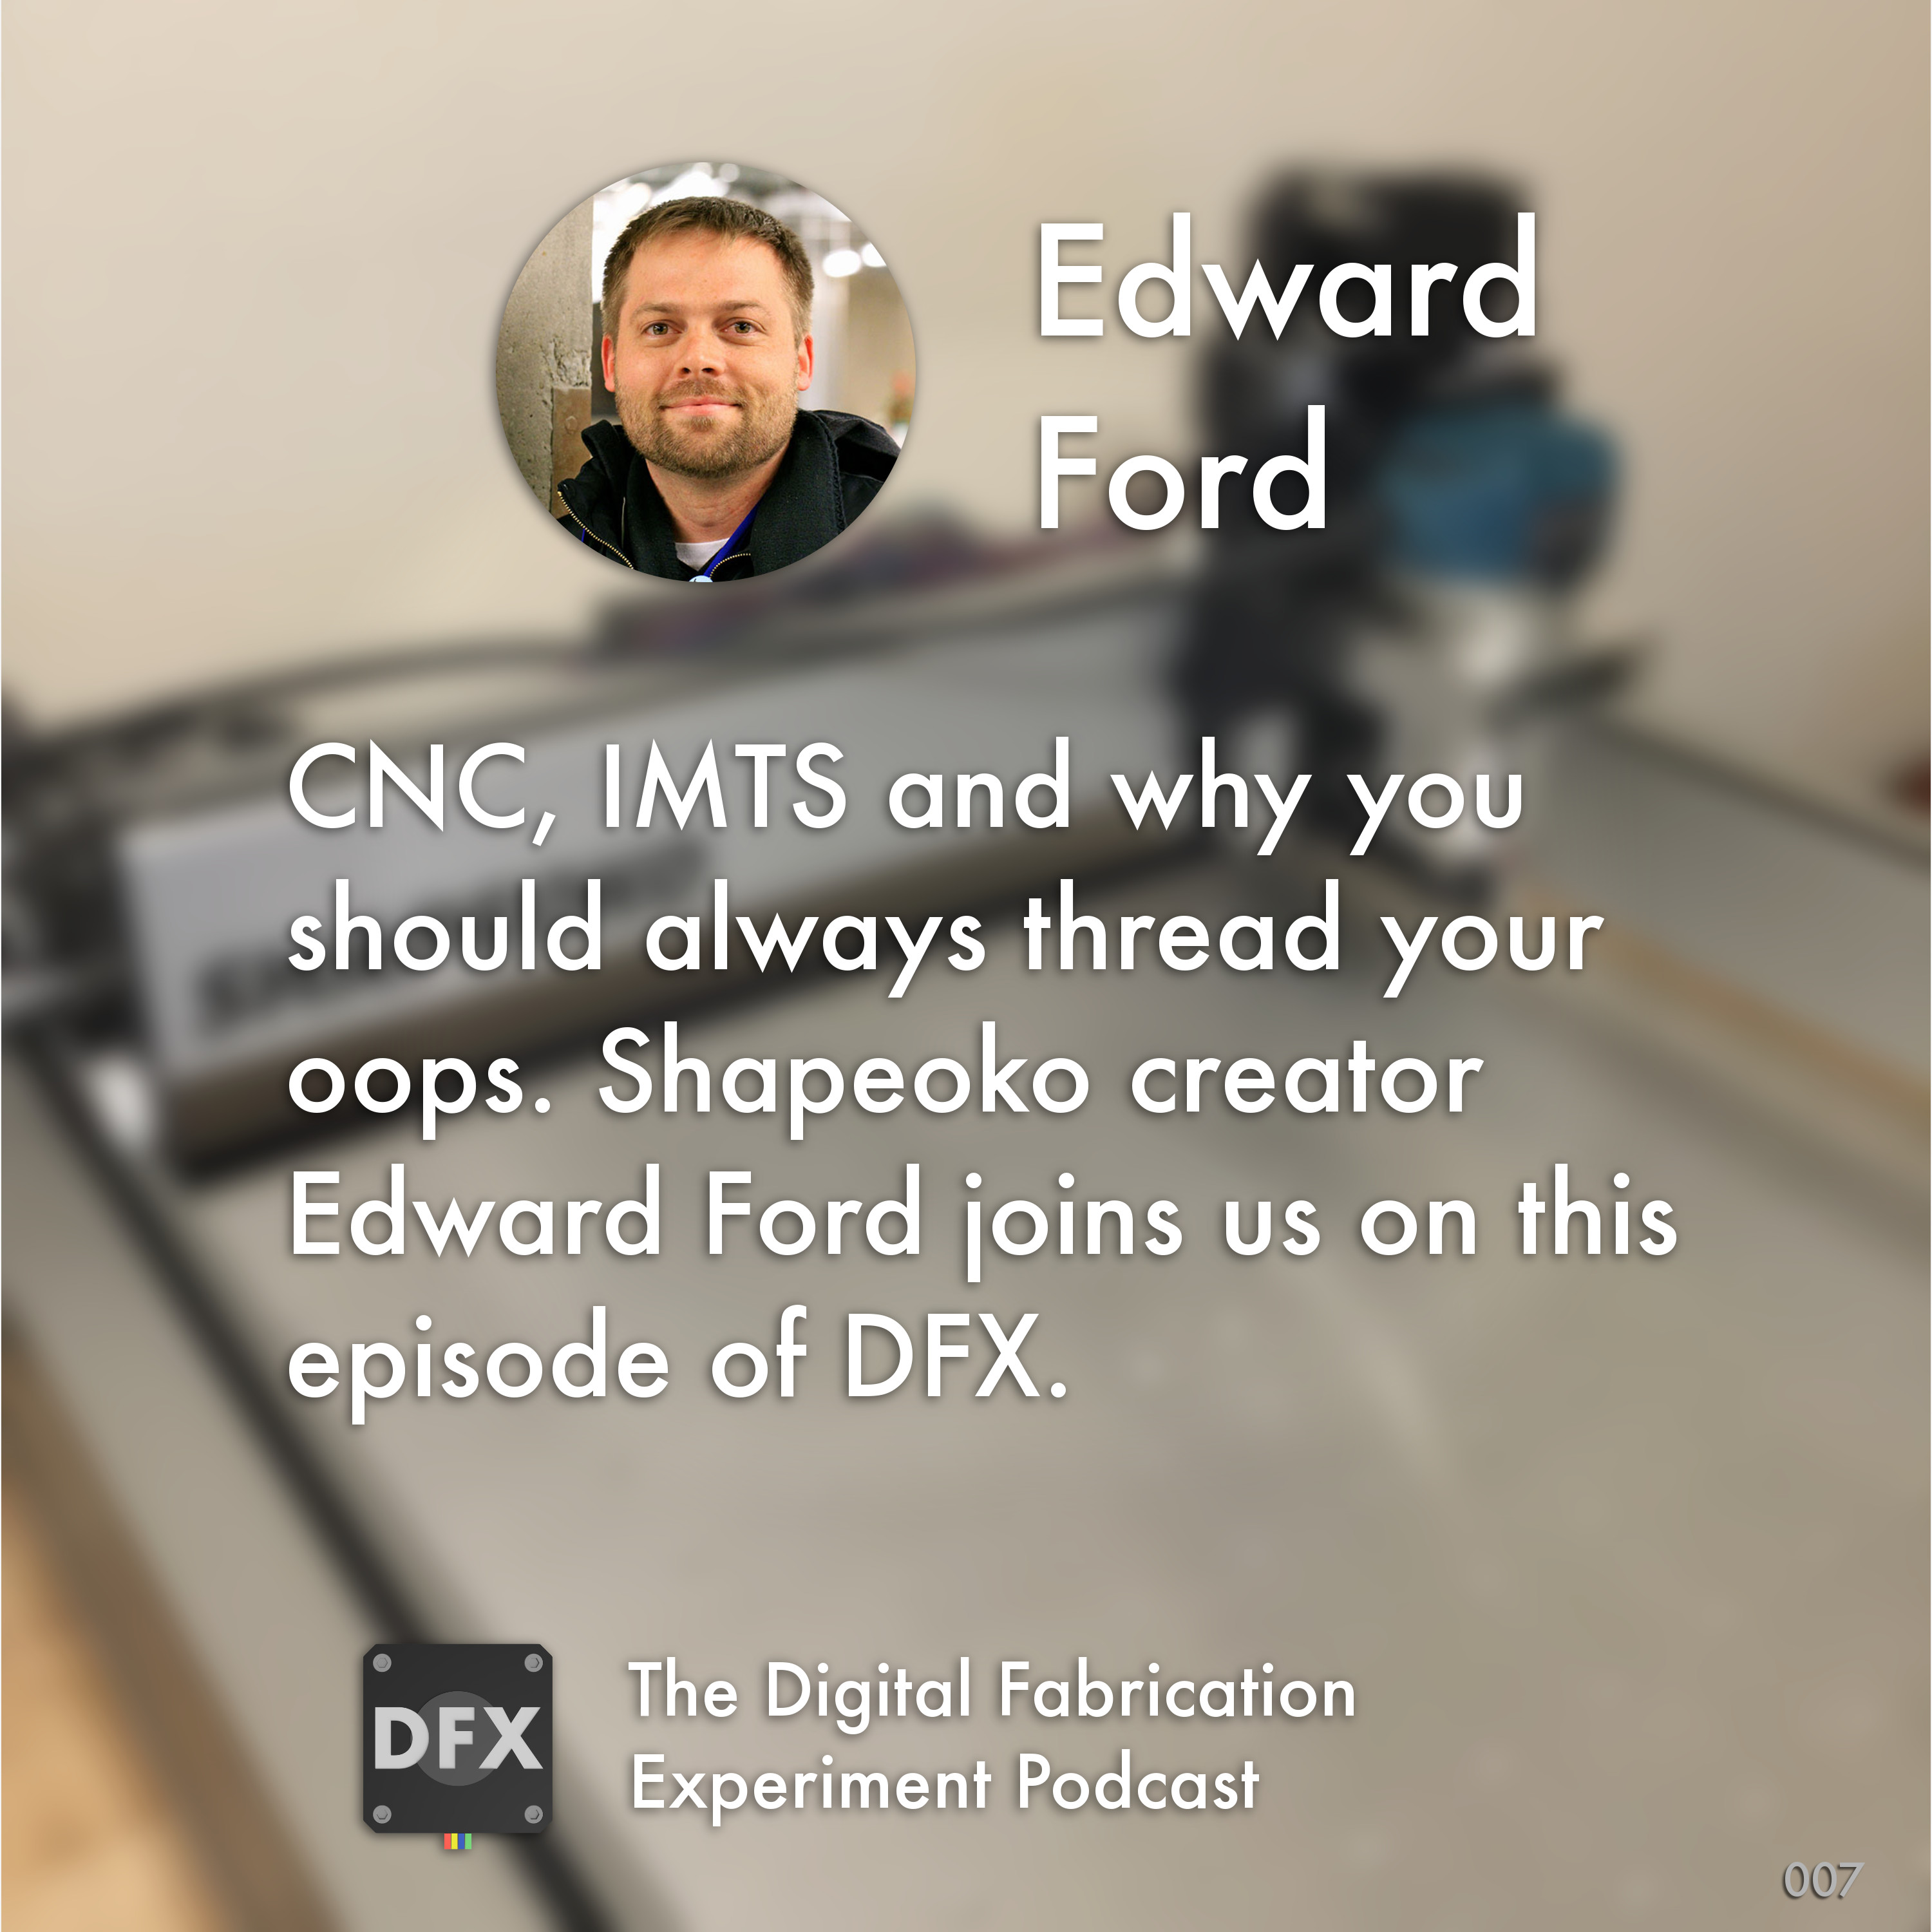 The Digital Fabrication Experiment Podcast – Podcast – Podtail